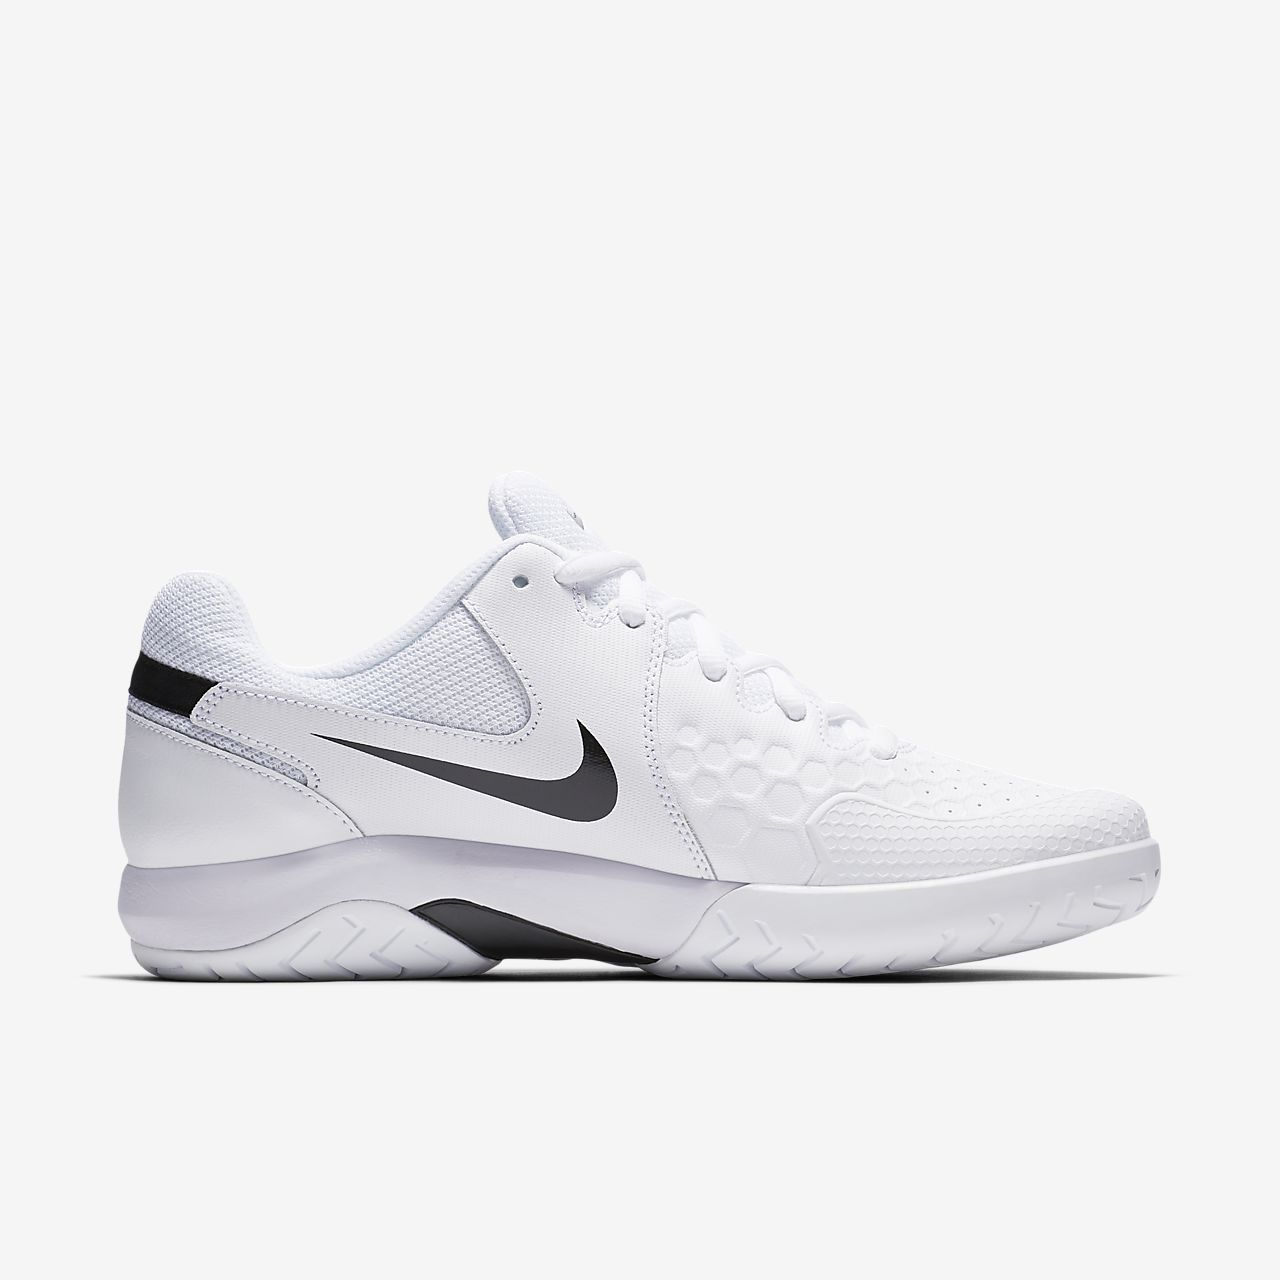 fceb6d71f nikecourt-air-zoom-resistance-hard-court-tennis-shoe-rJTGAGEP.jpg